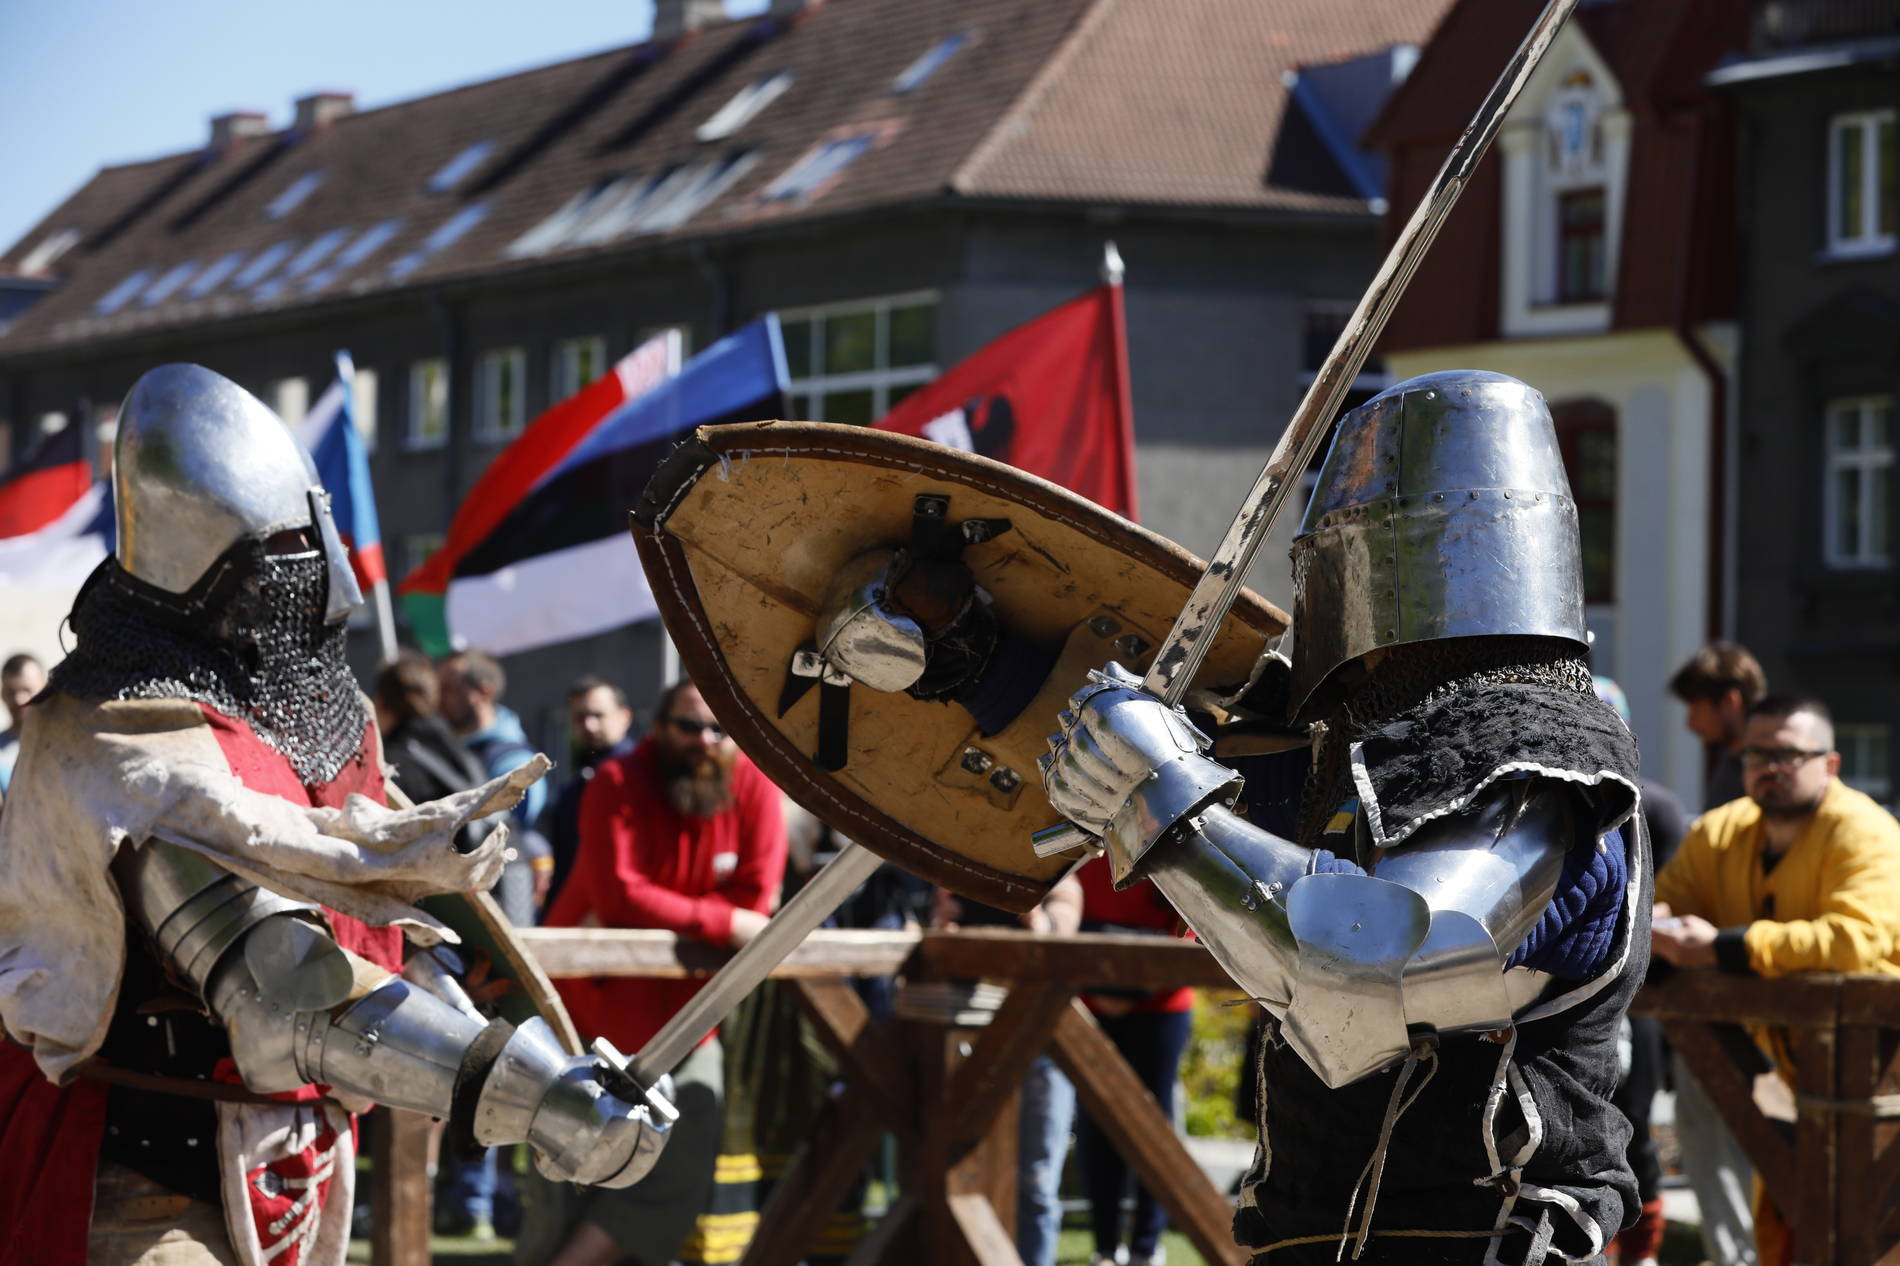 Knights at the Tallinn Old Town Days